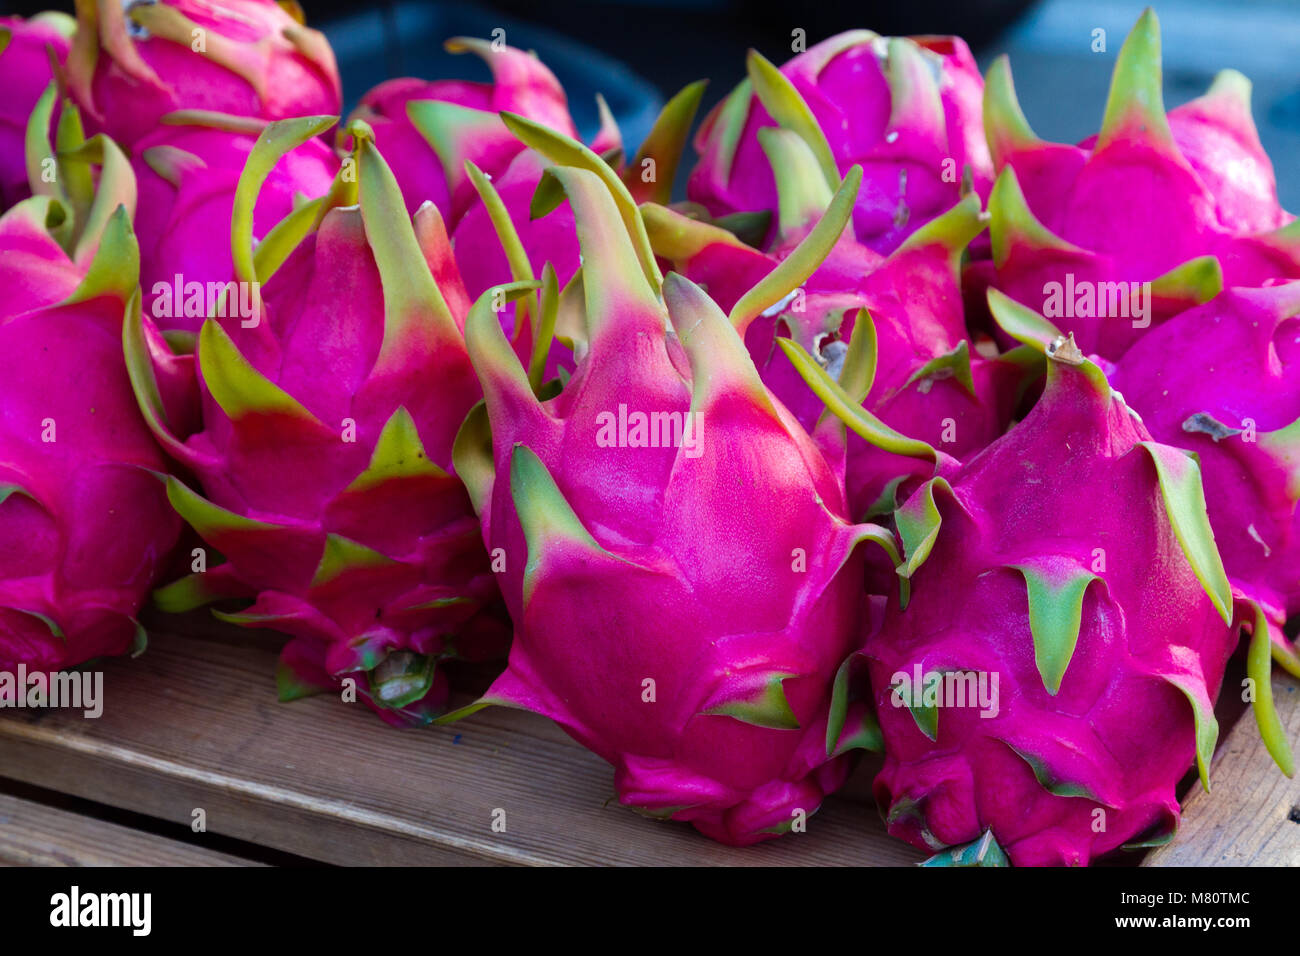 Exotic dragon fruit displayed for sale at a farmers market. - Stock Image